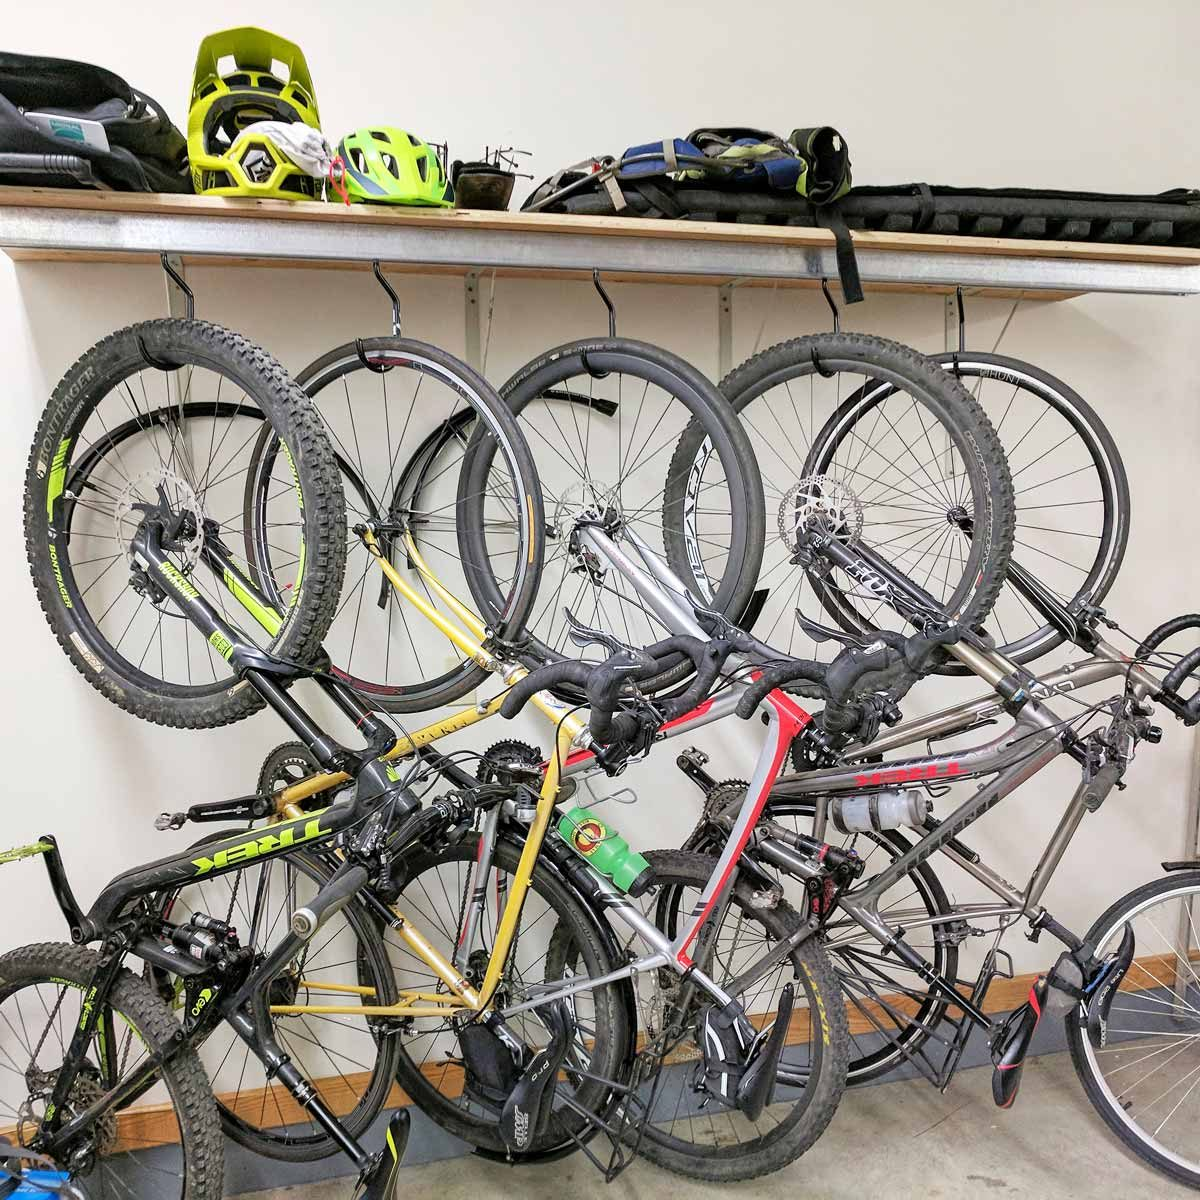 Tidy Garage Bike Rack Installation 8 Best Reader Garage Projects And Storage Tips The Family Handyman